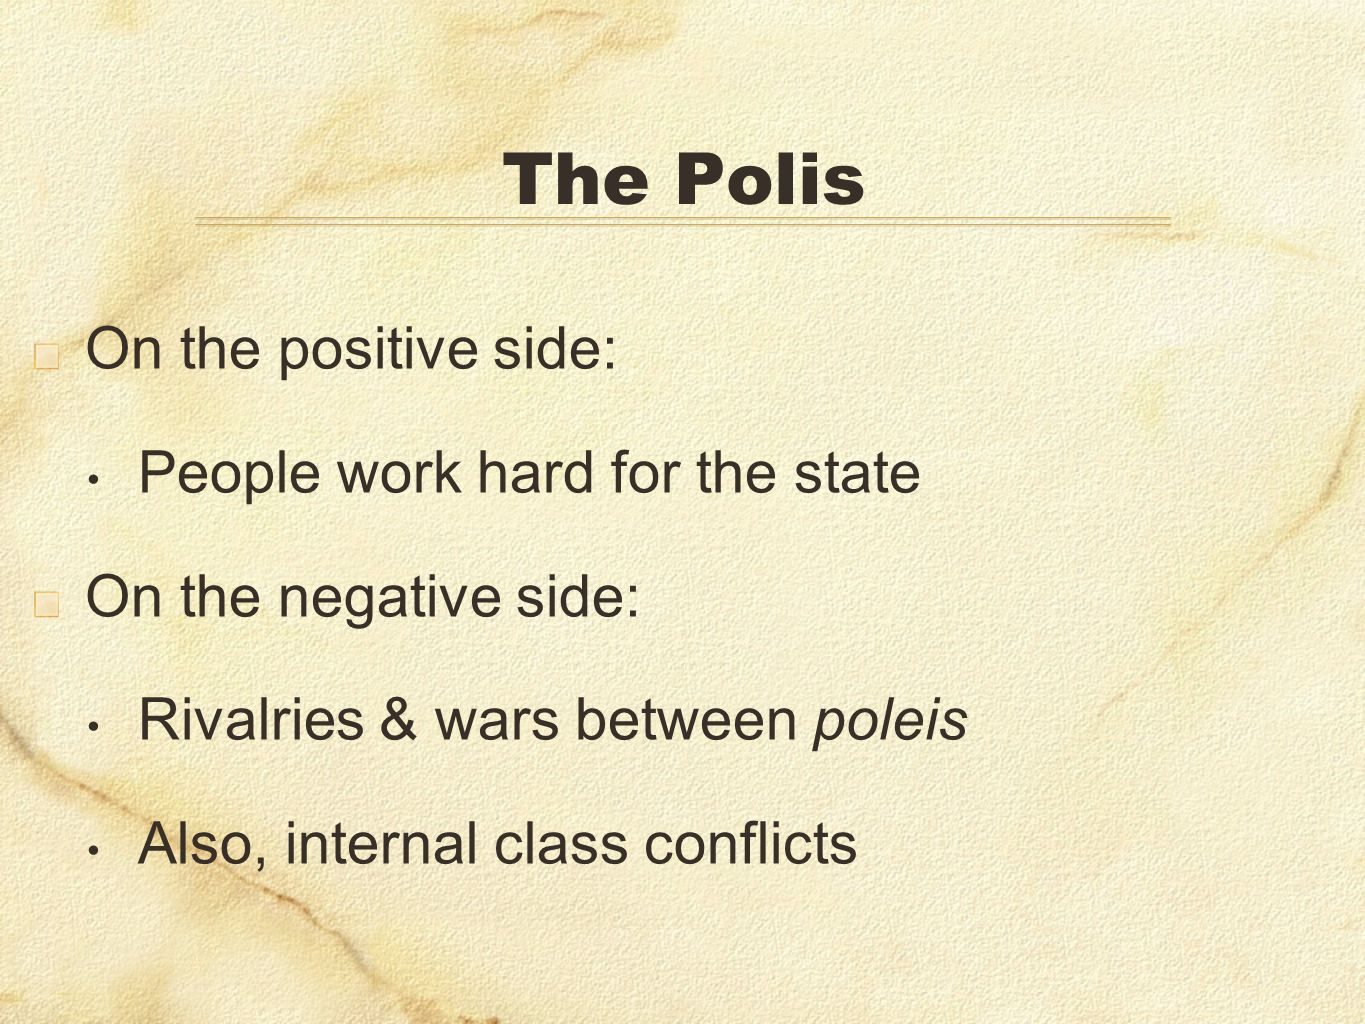 The Polis On the positive side: People work hard for the state